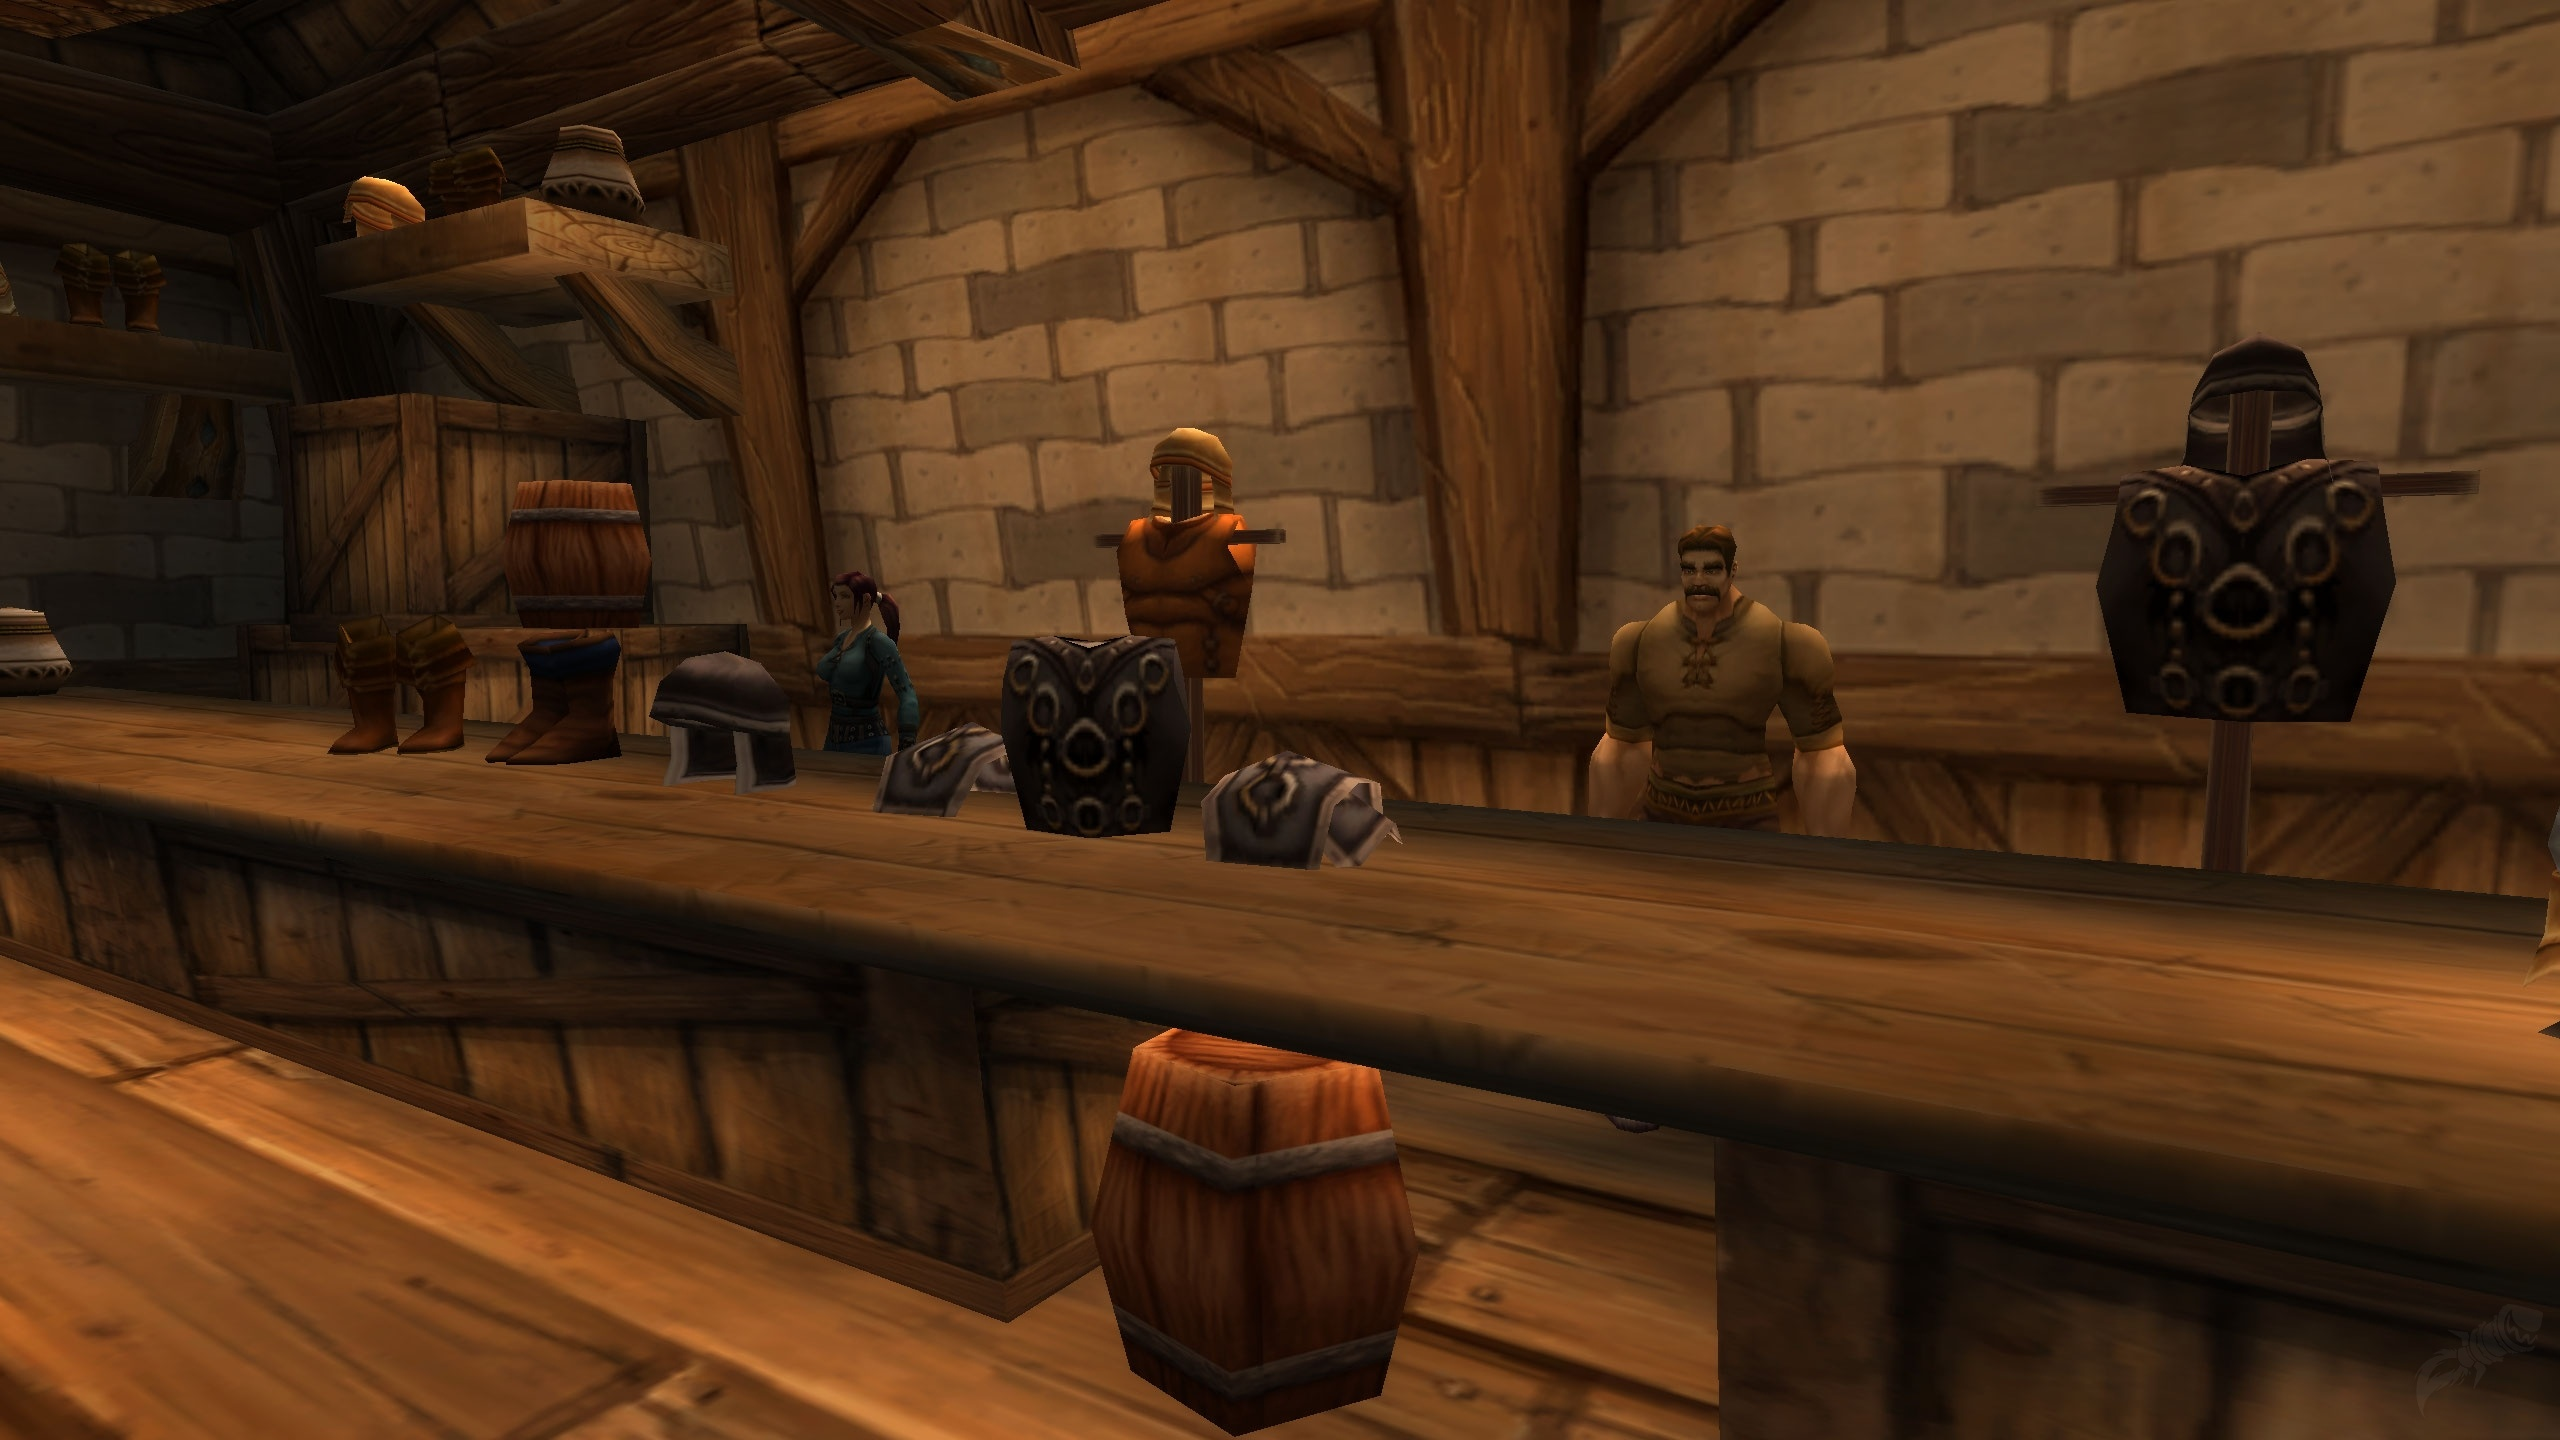 Classic Wow Leatherworking Profession Guide Leveling 1 300 Guides Wowhead